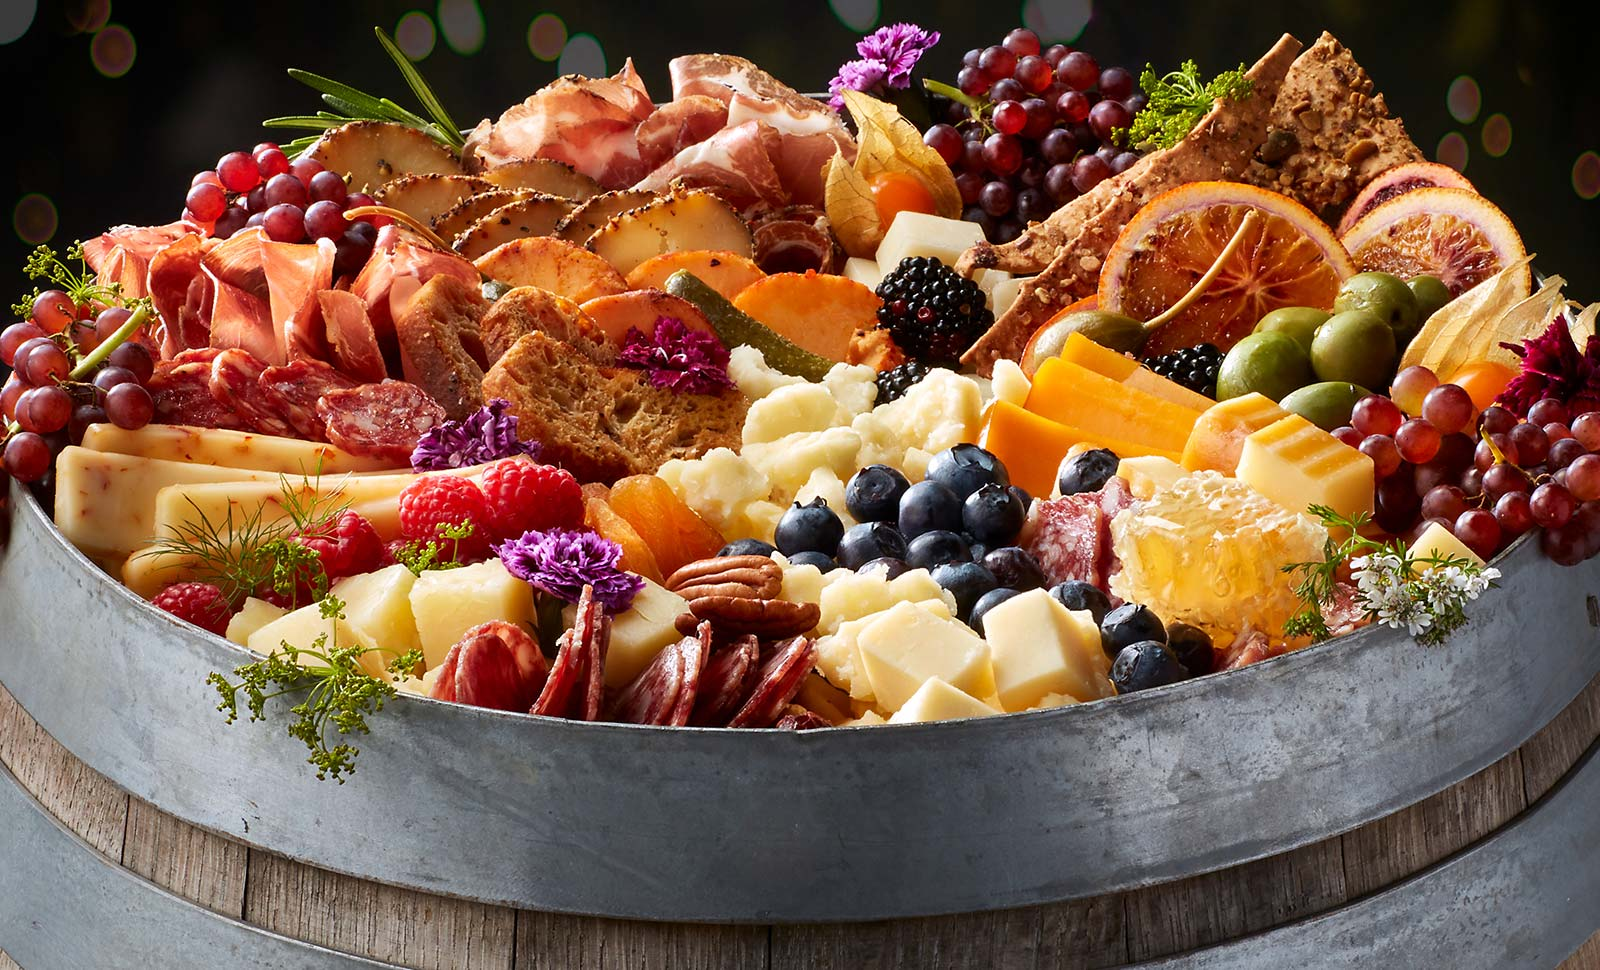 A wooden barrel topped with an assortment of cheeses, meats, fruits and breads.